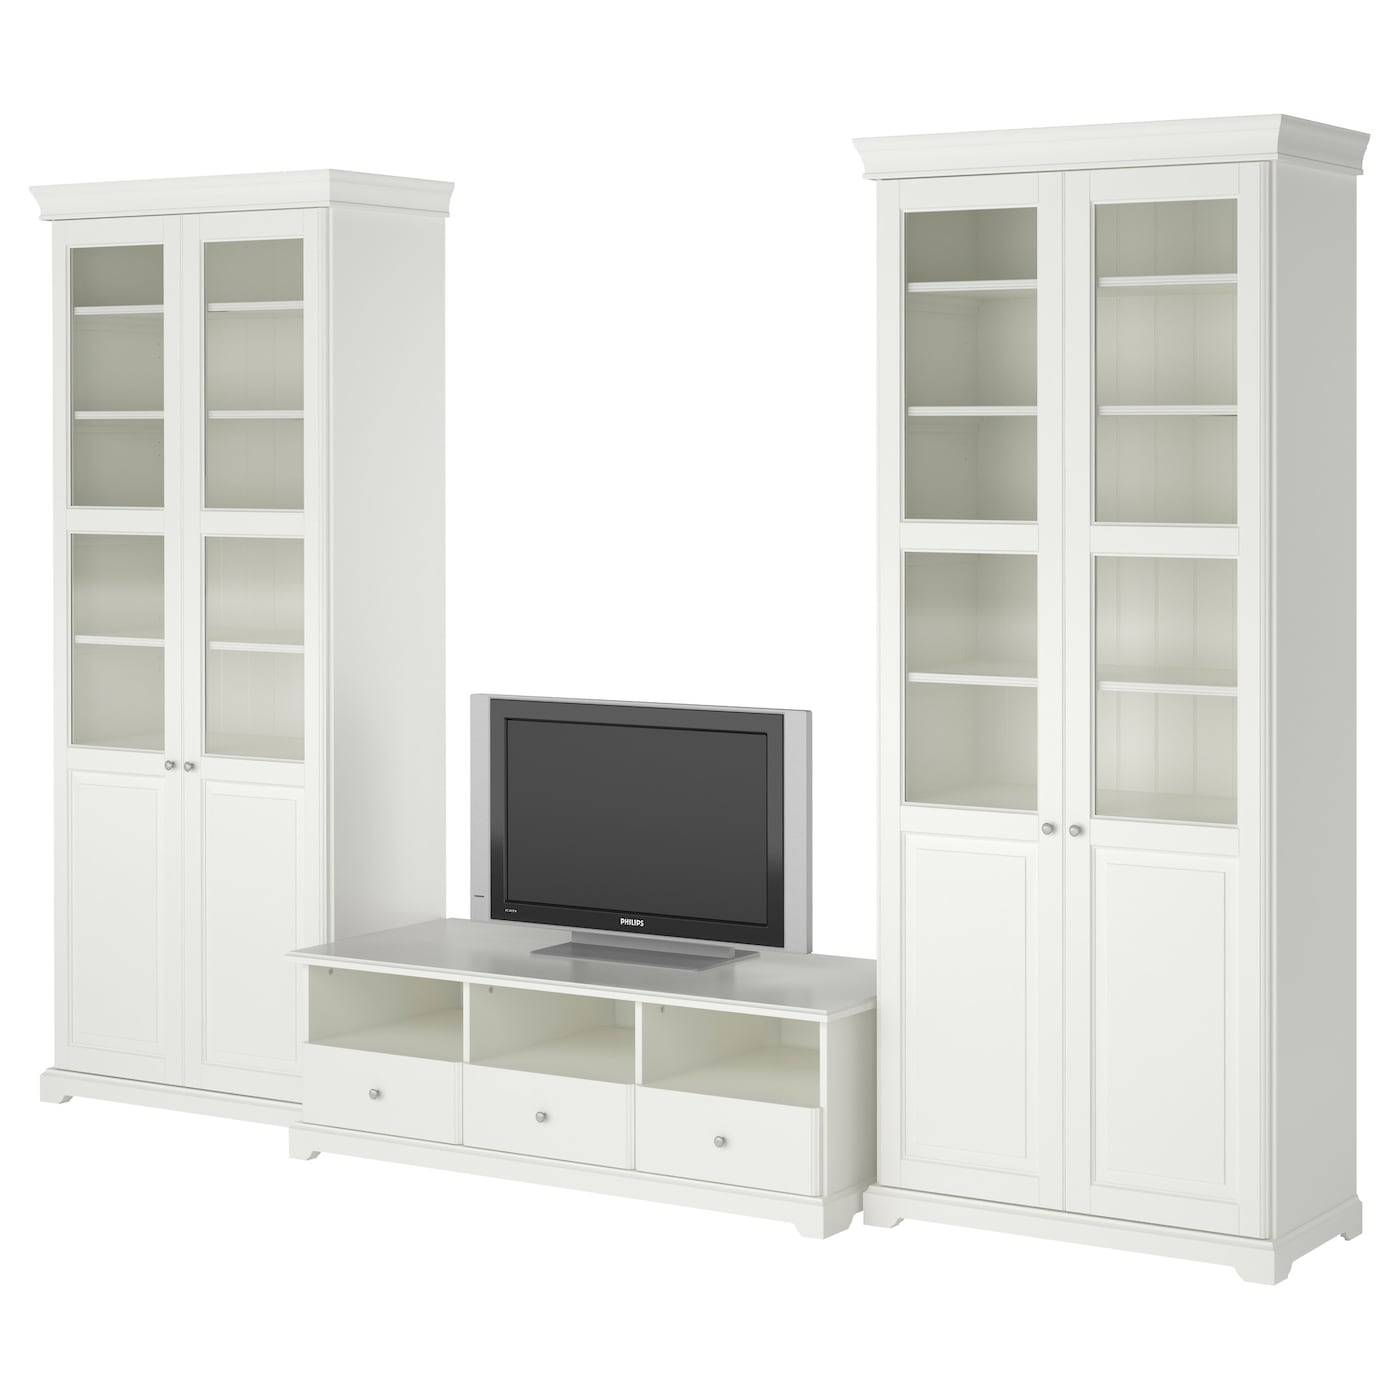 Liatorp Tv Storage Combination White 331x214 Cm Ikea